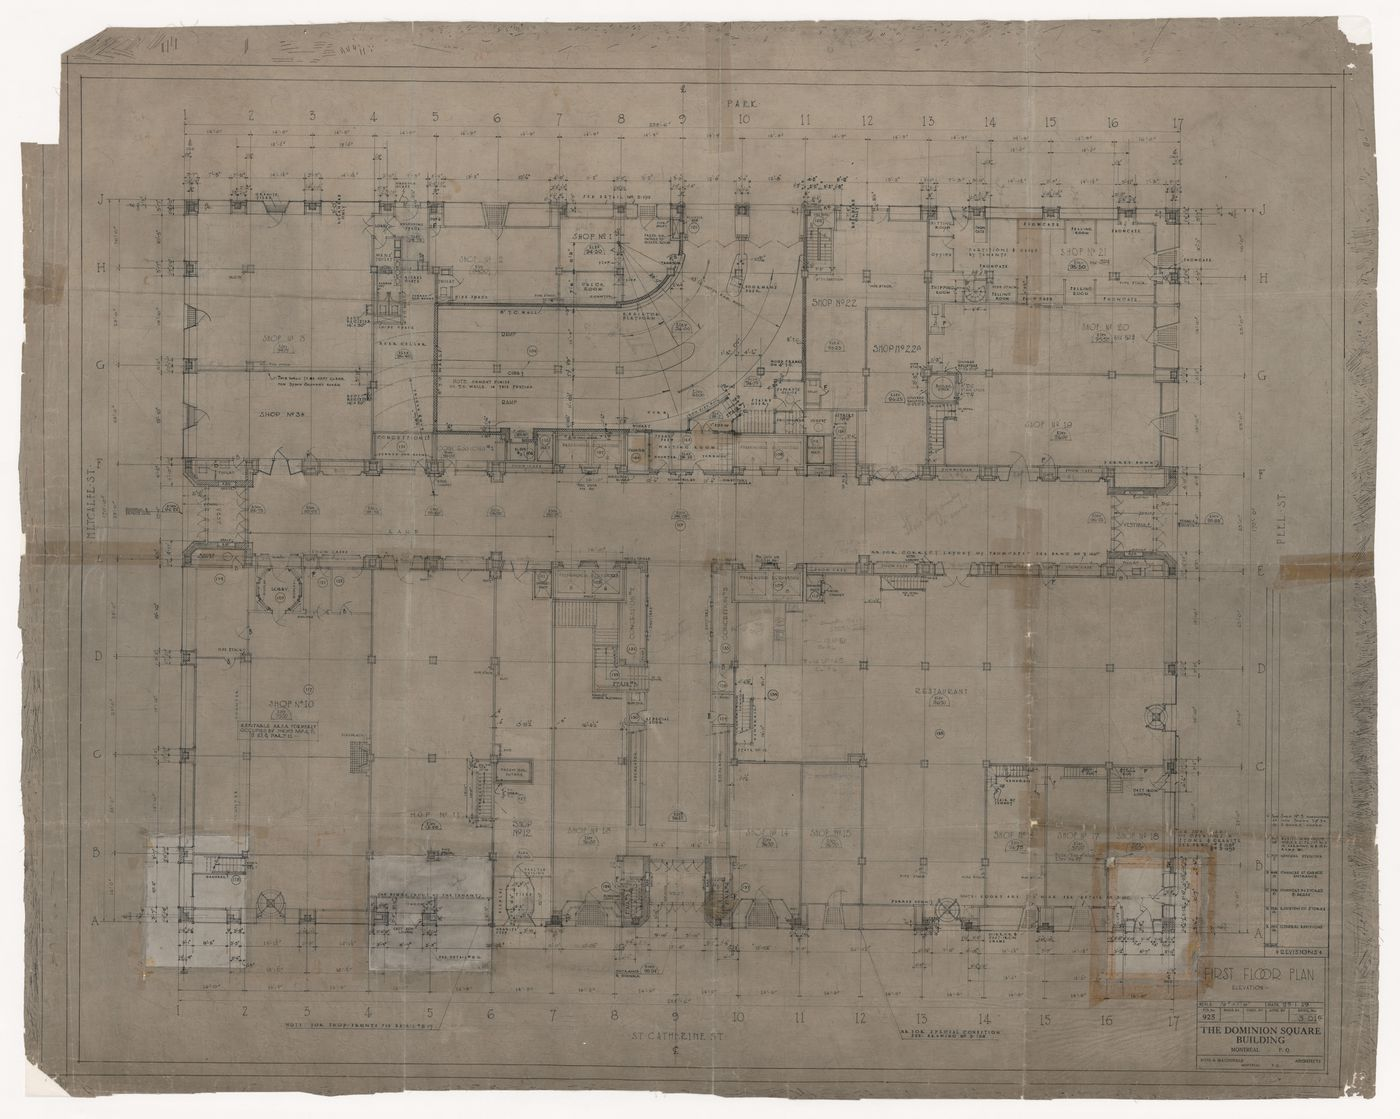 First floor plan for Dominion Square Building, Montreal, Québec